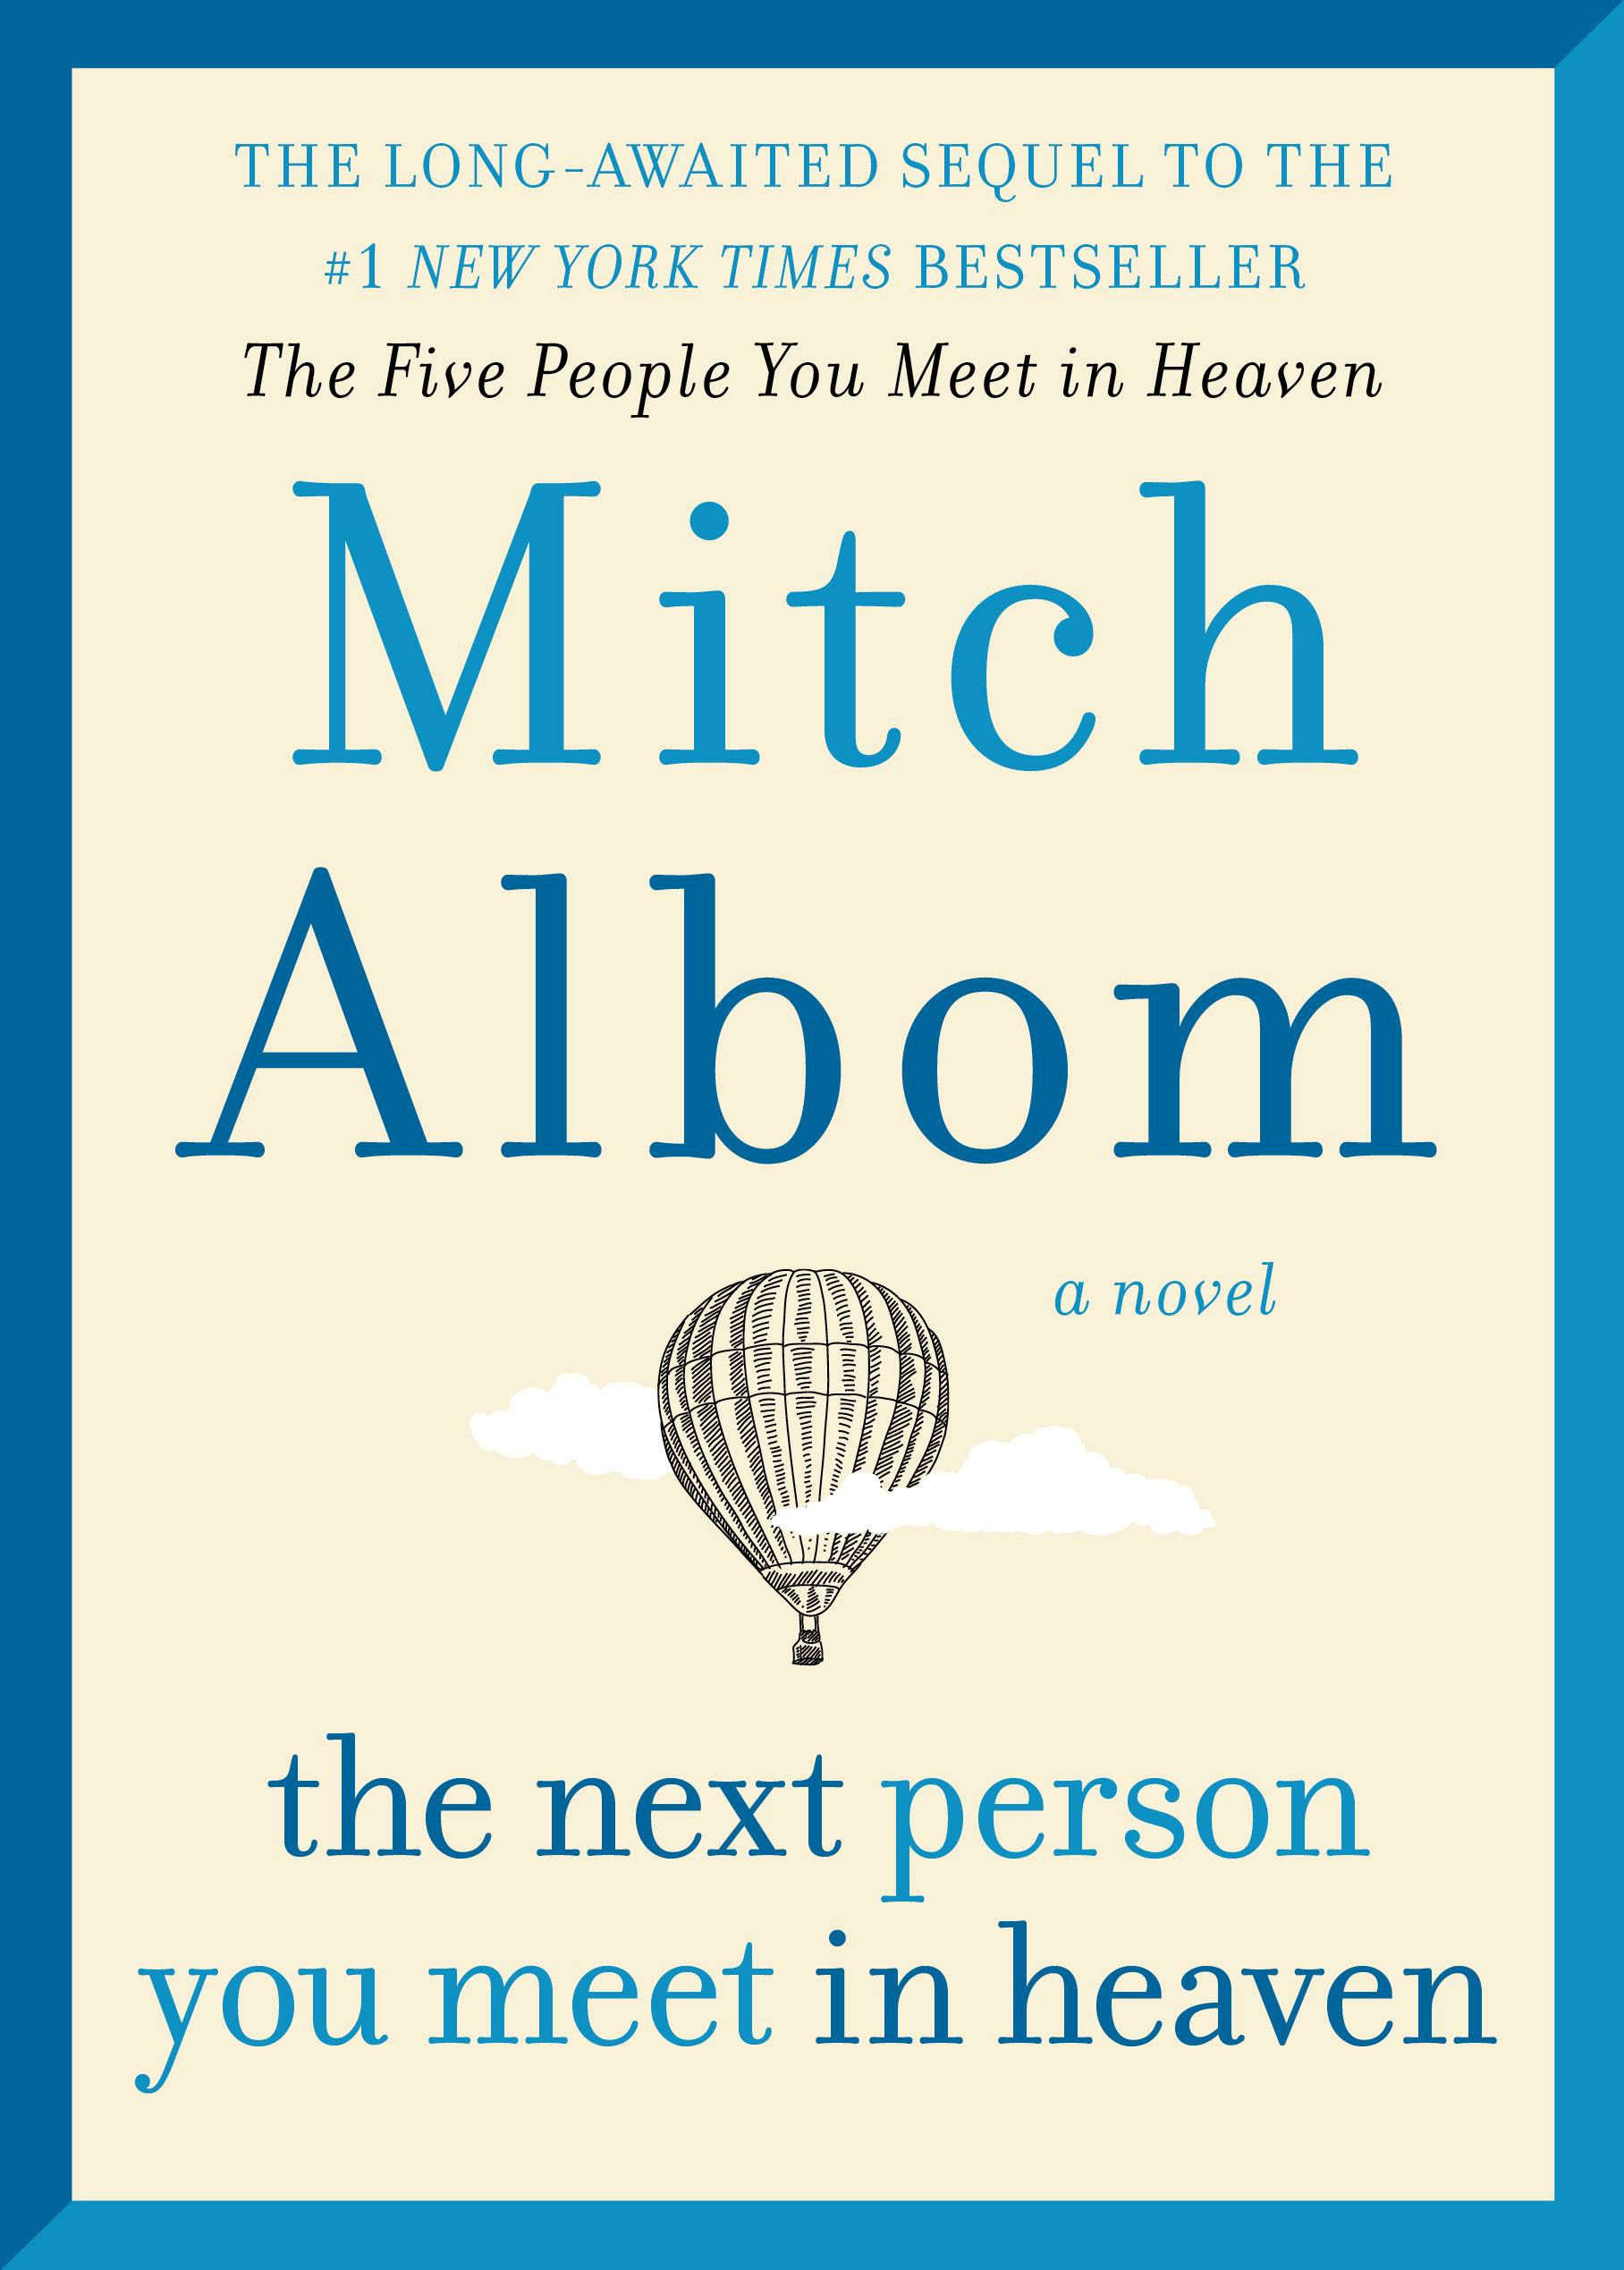 """The Next Person You Meet in Heaven"" by Mitch Albom."